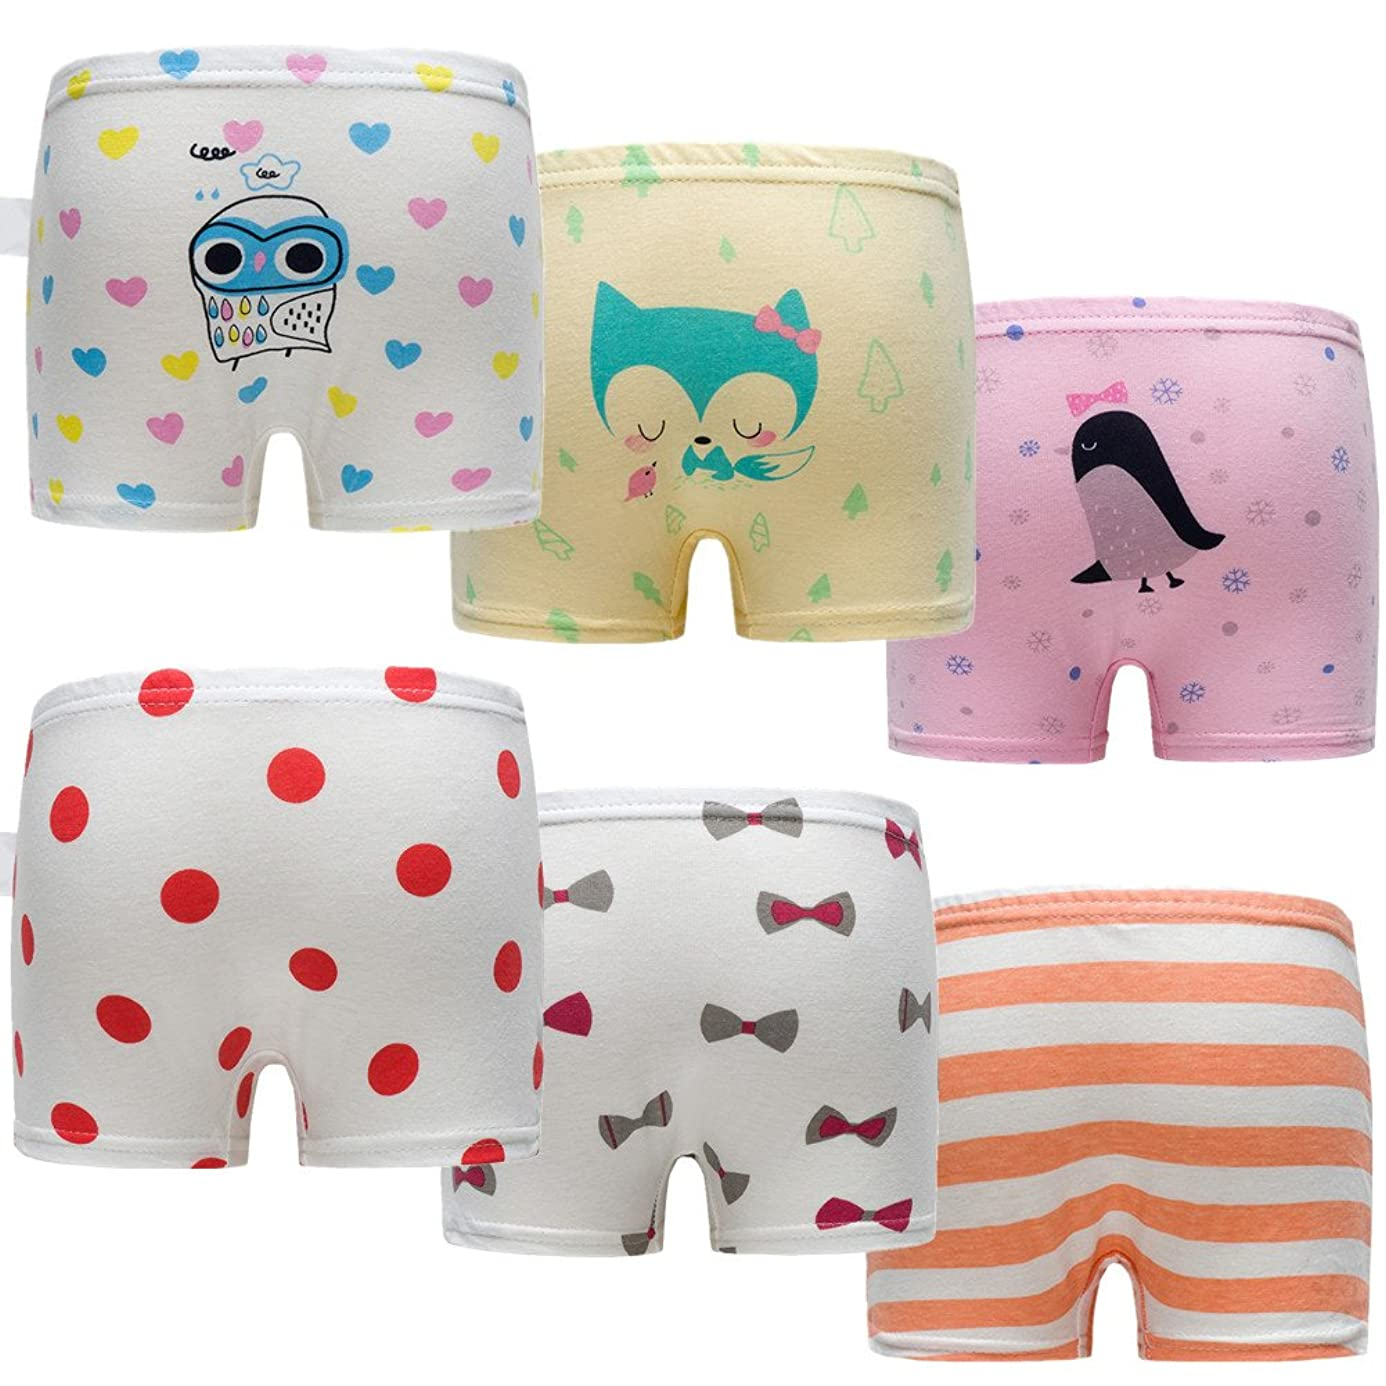 Skhls Baby Girls Cute Briefs Panties Boxers Cotton Underwear,Multi Pack ean7927139